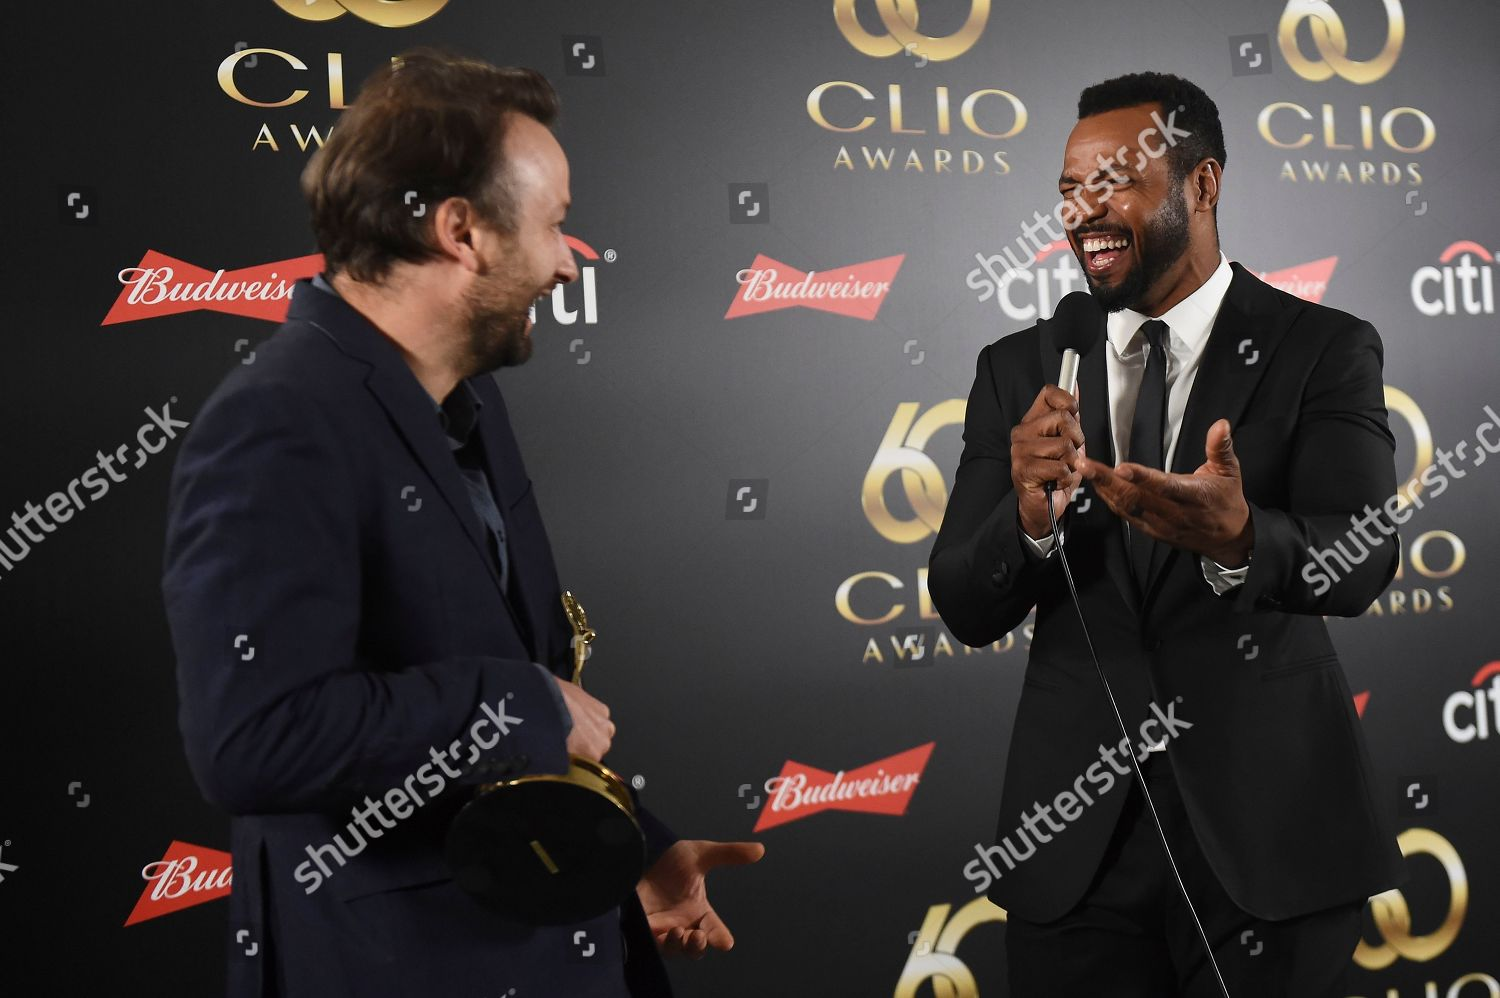 Arkivfoto av 2019 Clio Awards 60th Anniversary, New York, USA - 25 Sep 2019